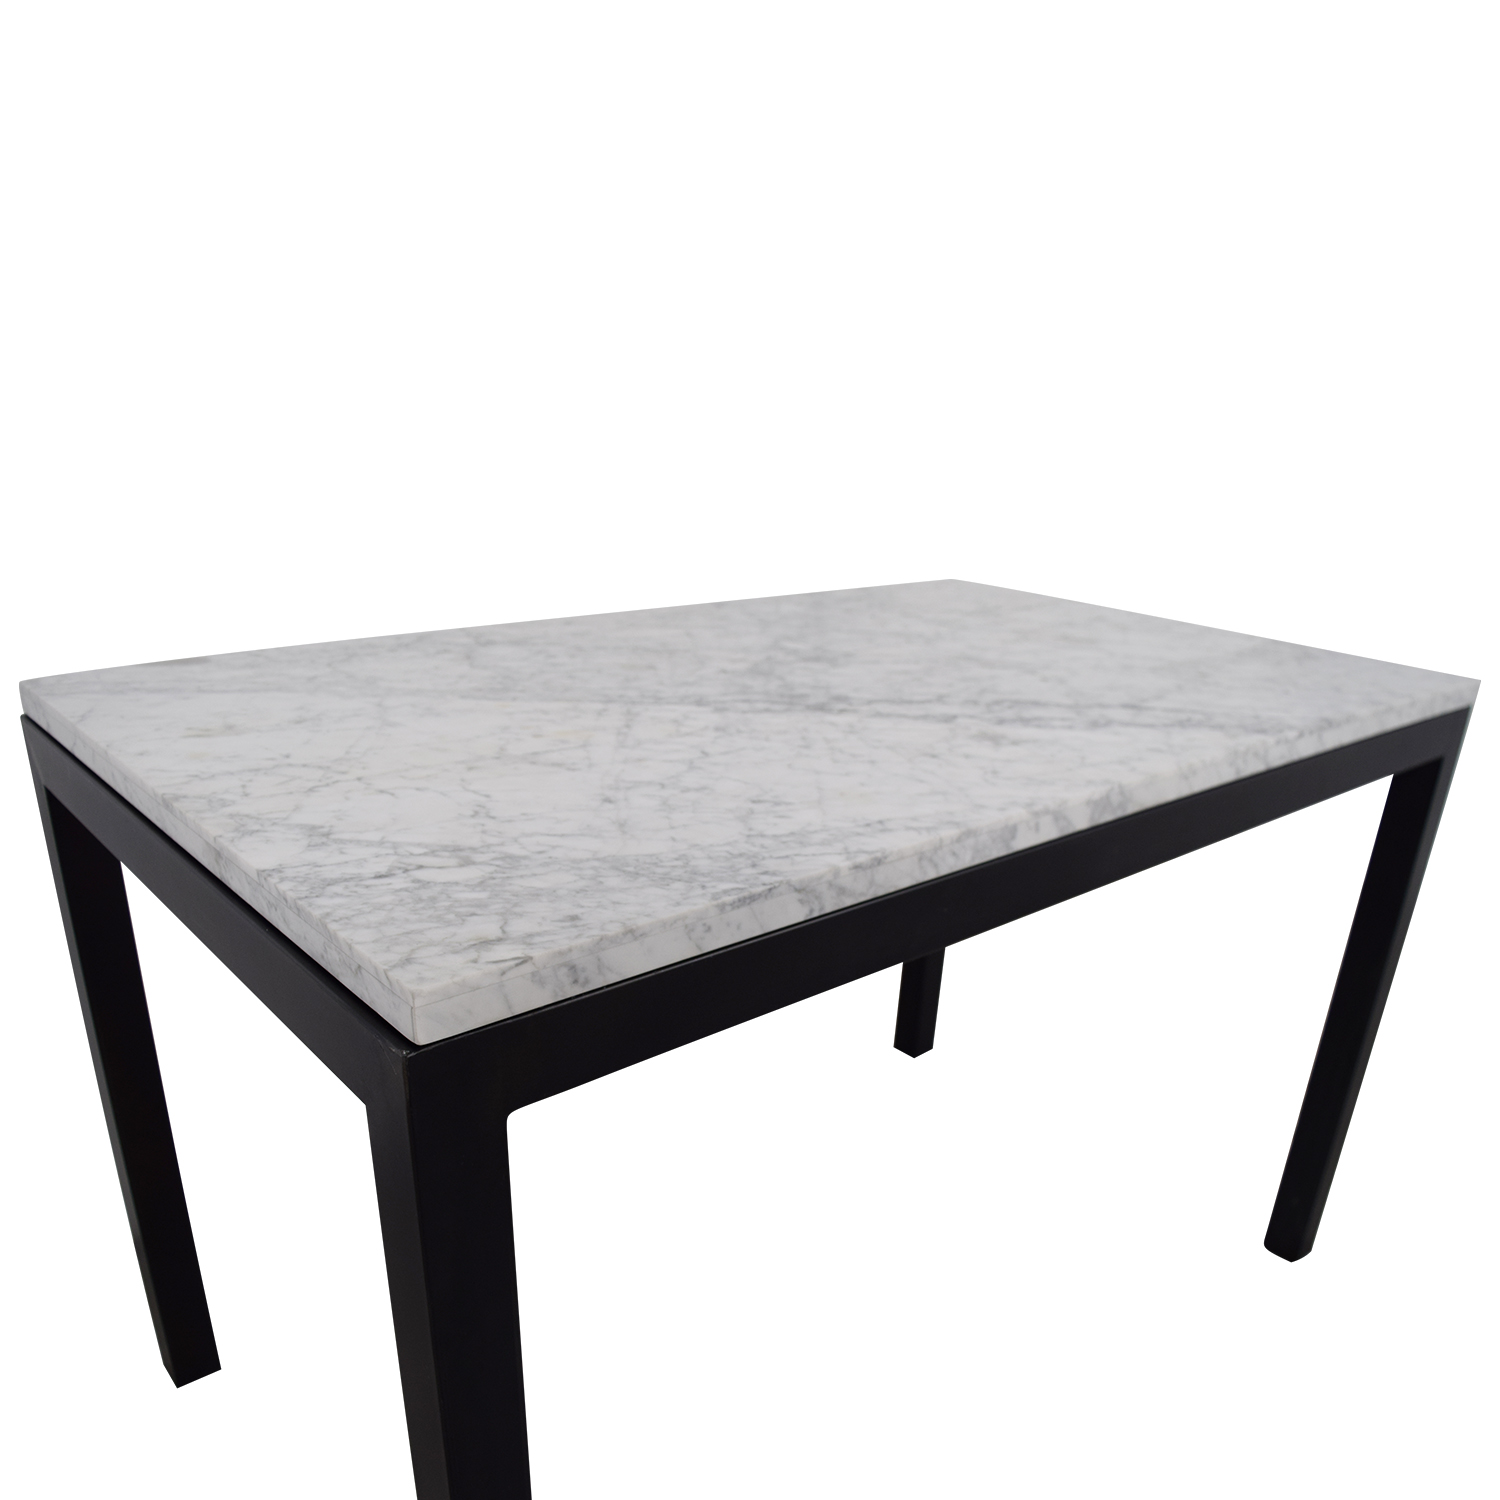 60 Off Crate Barrel Parsons Marble Top Steel Base Dining Table Tables